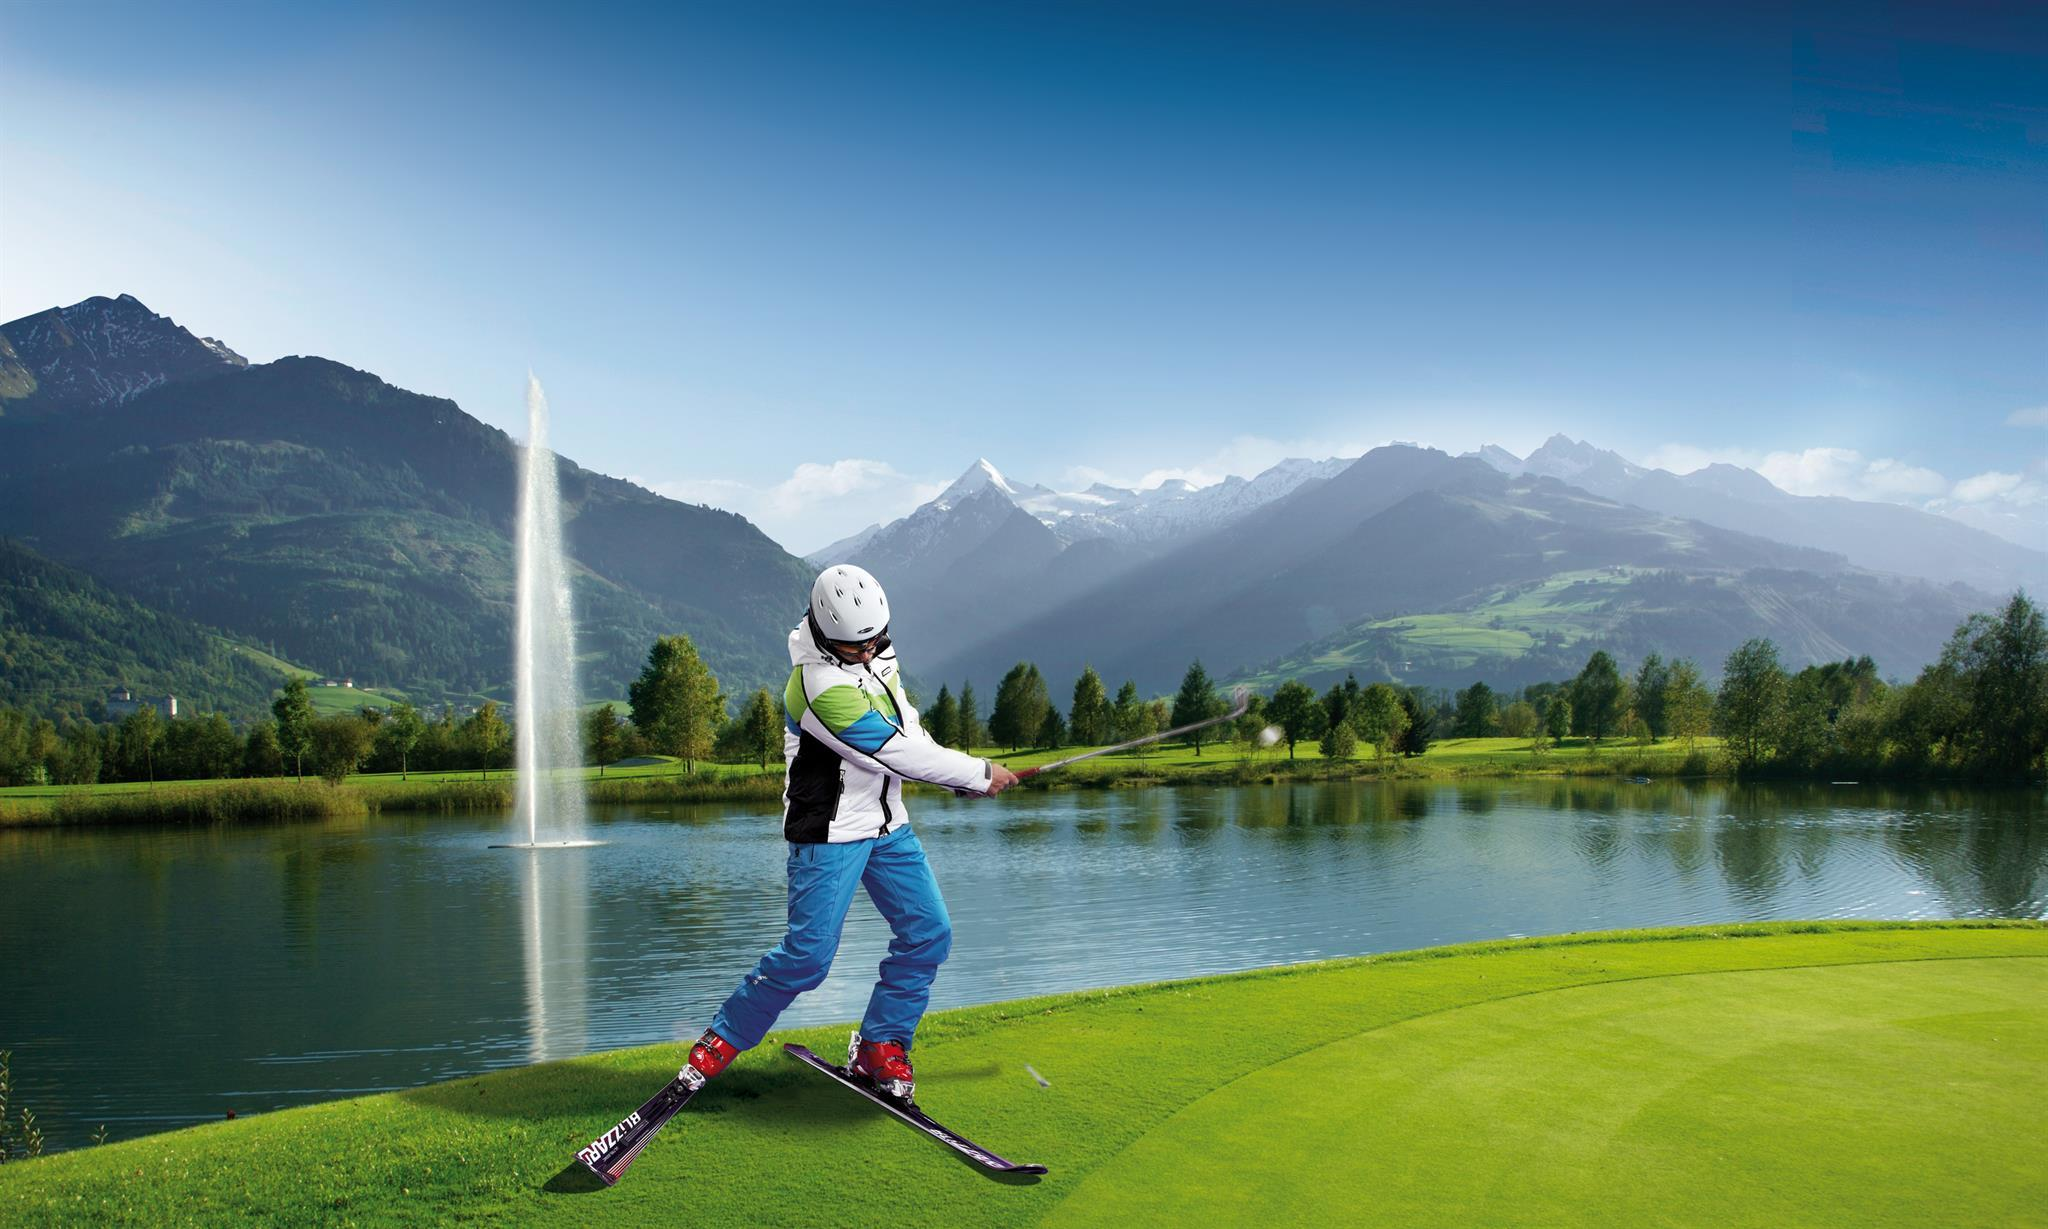 Ski & Golf World Championship 2020 - 22/05/2020